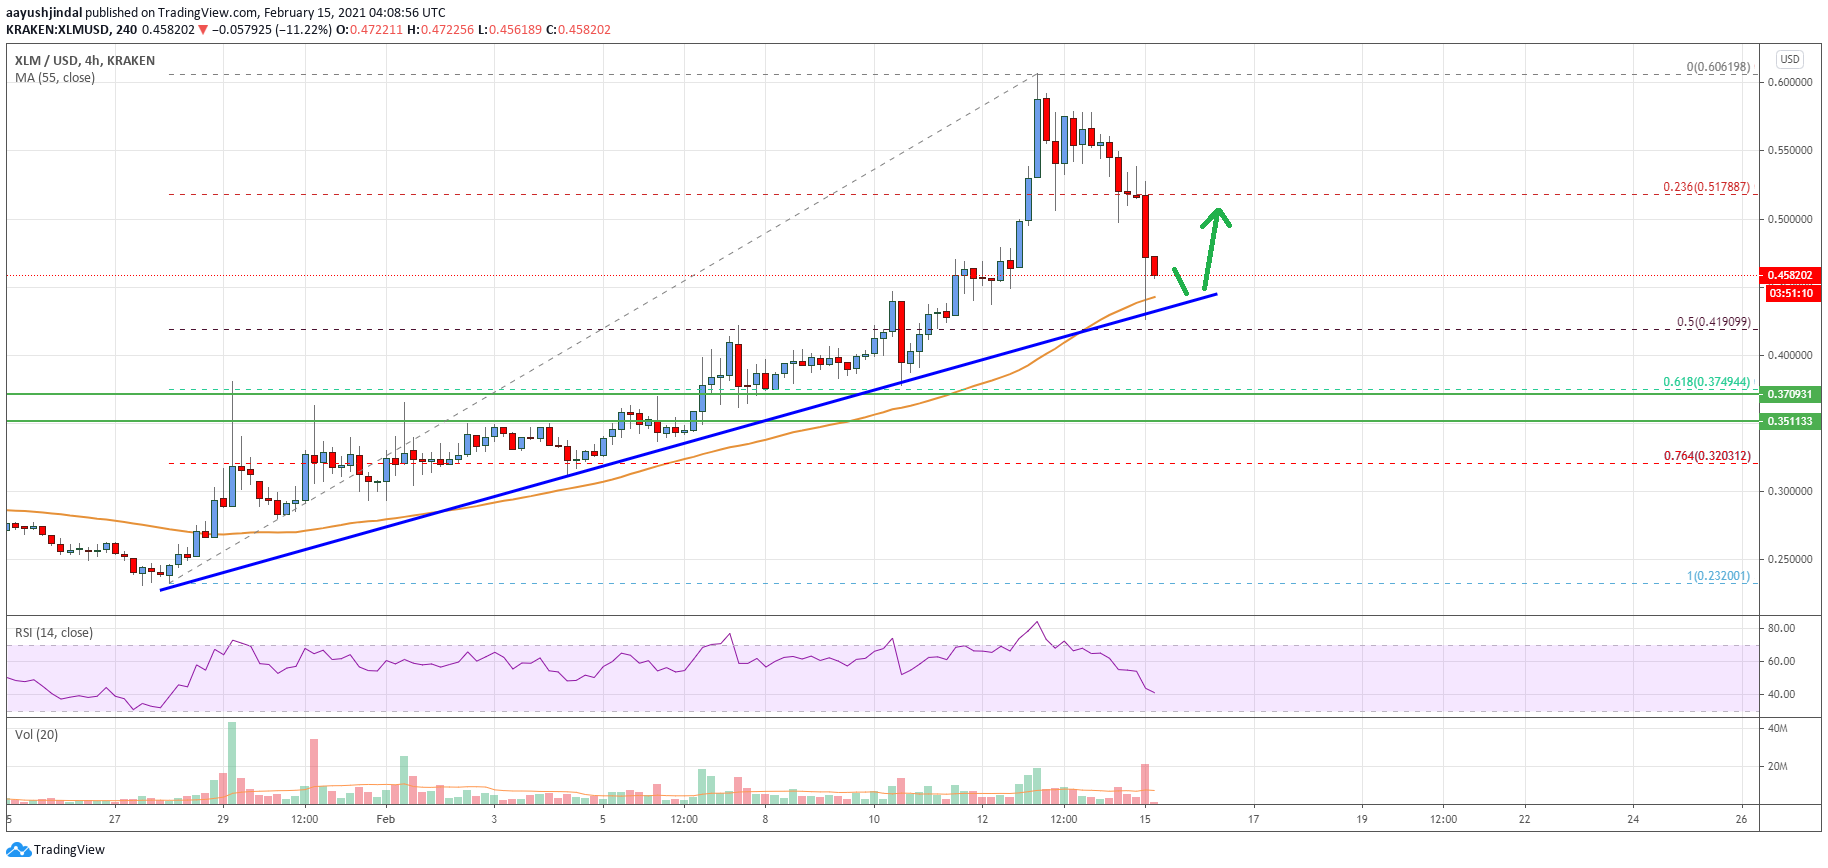 Stellar Lumen (XLM) Price Approaching Key Uptrend Support at $0.44